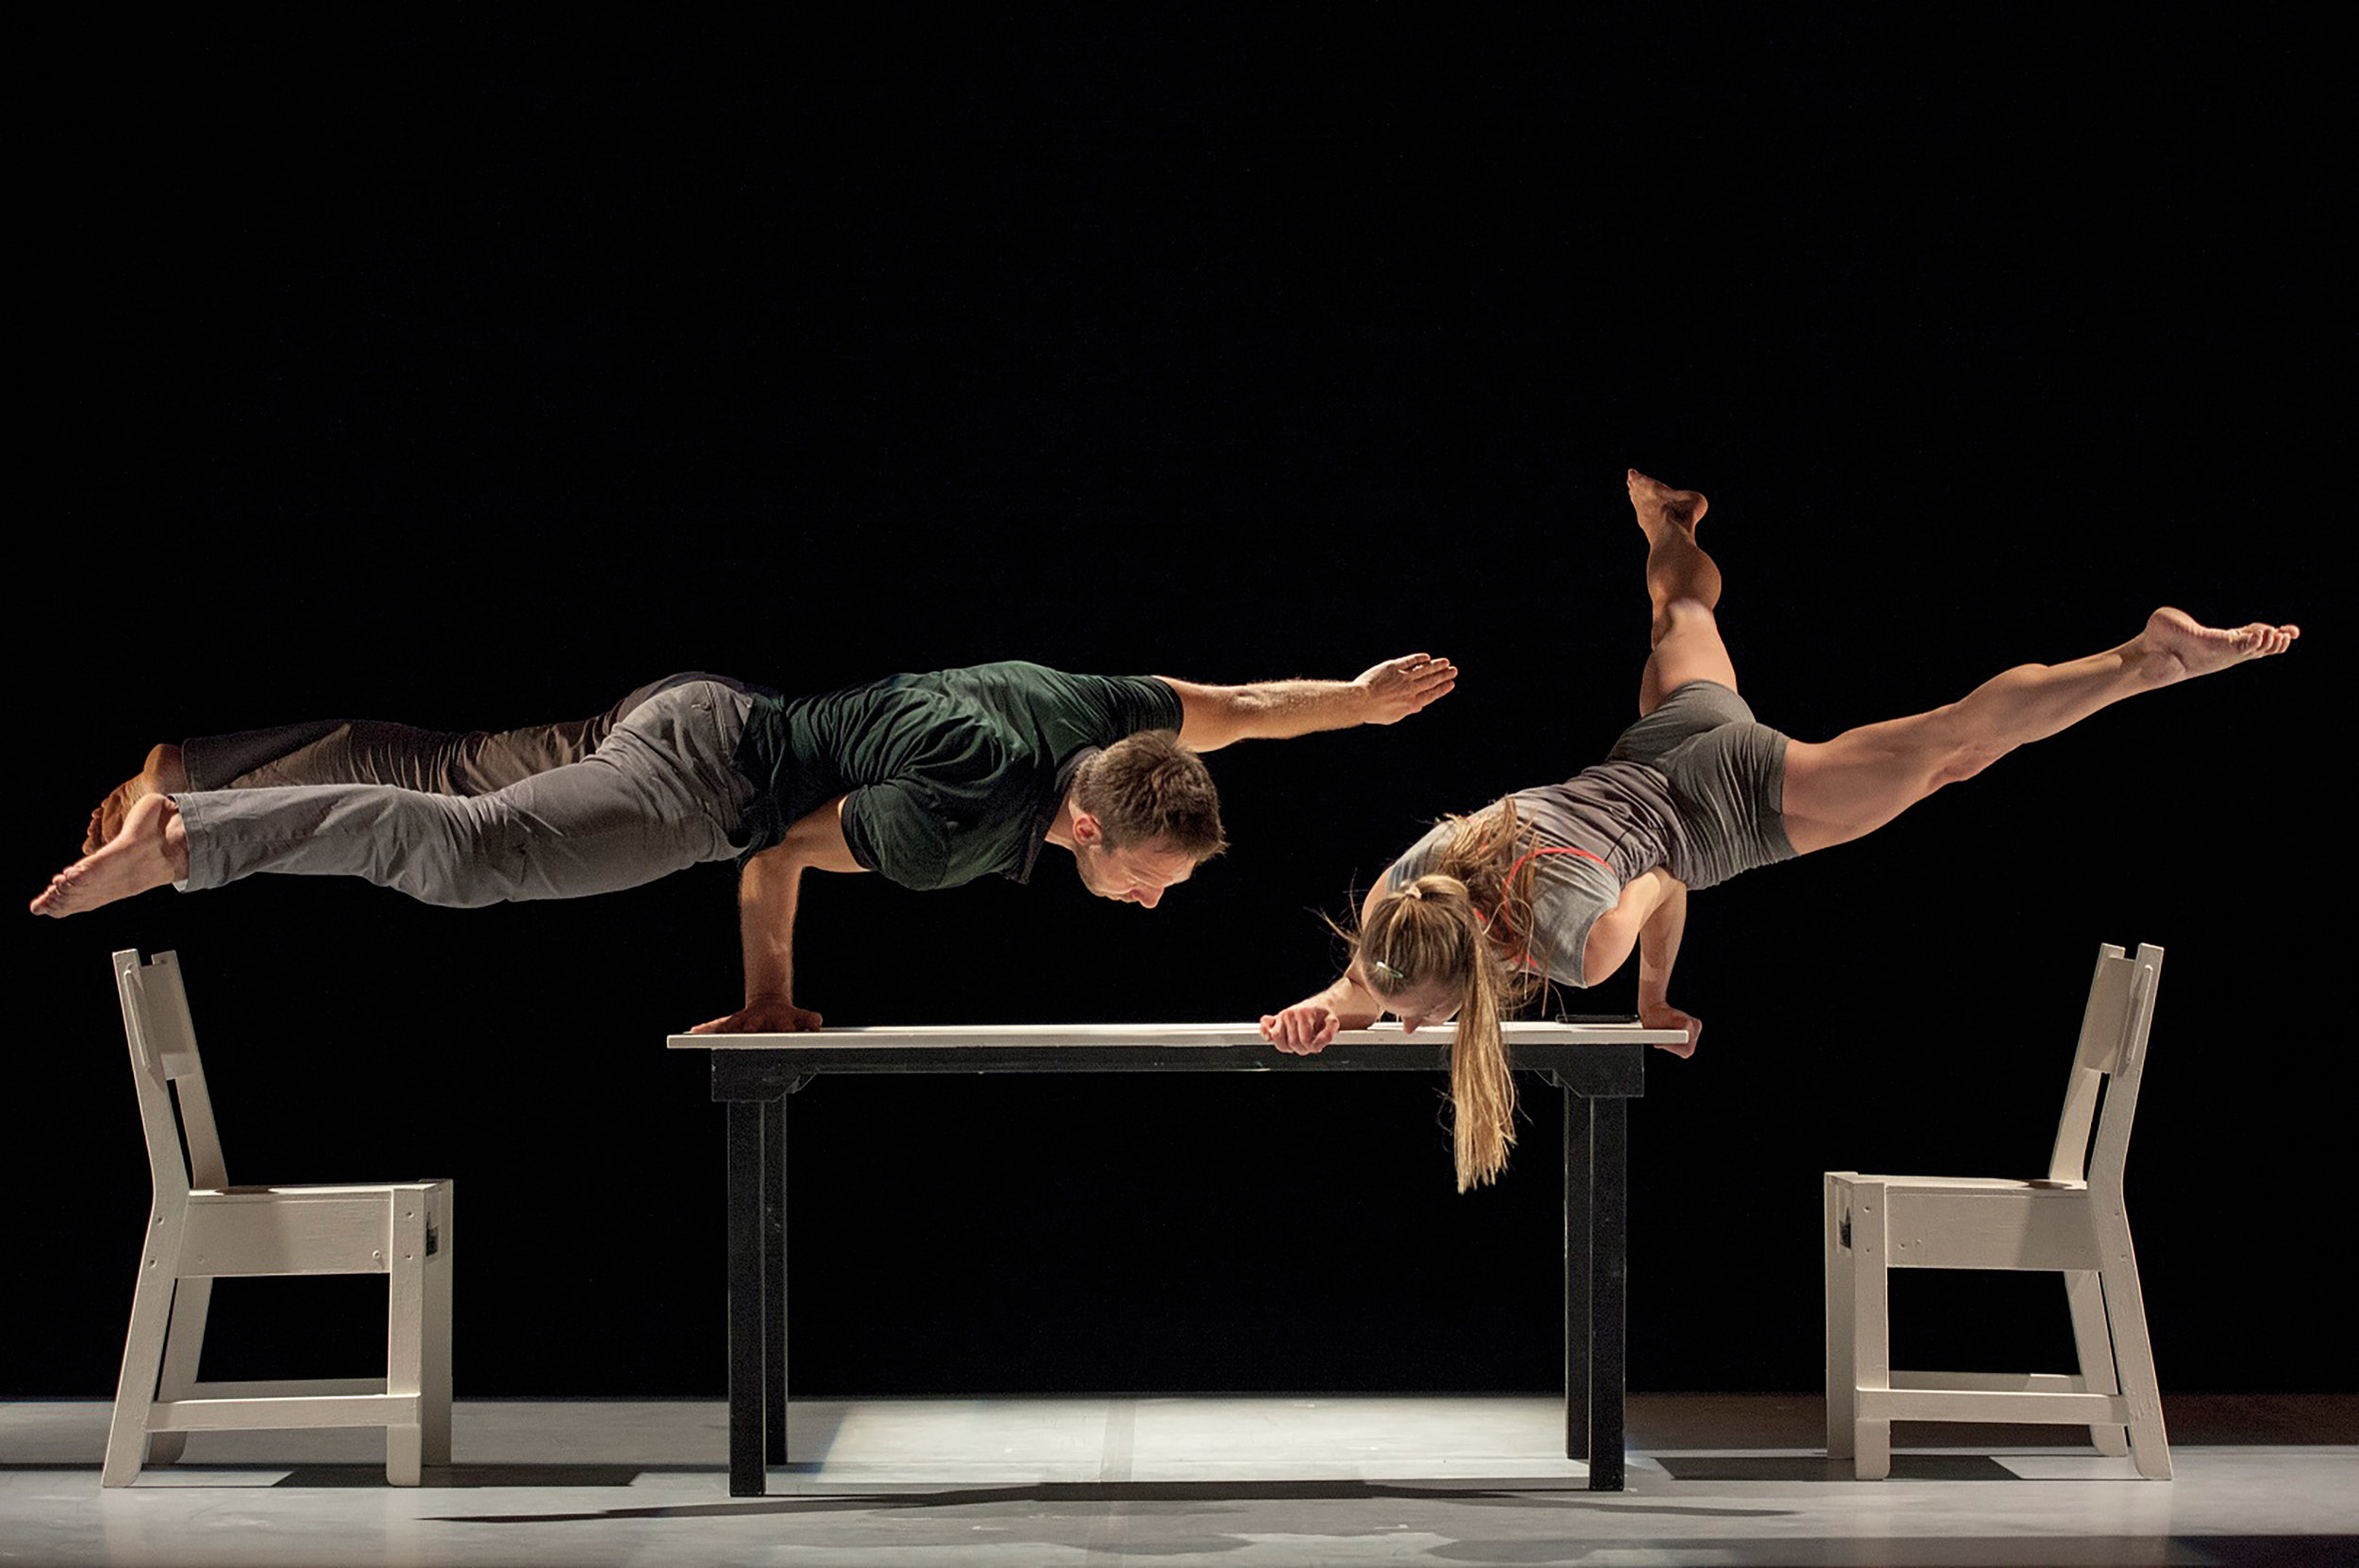 Terry-O'Toole-Theatre---Imbalance-Joli-Vyann-photo-by-Movingproductions-photography-small.jpg